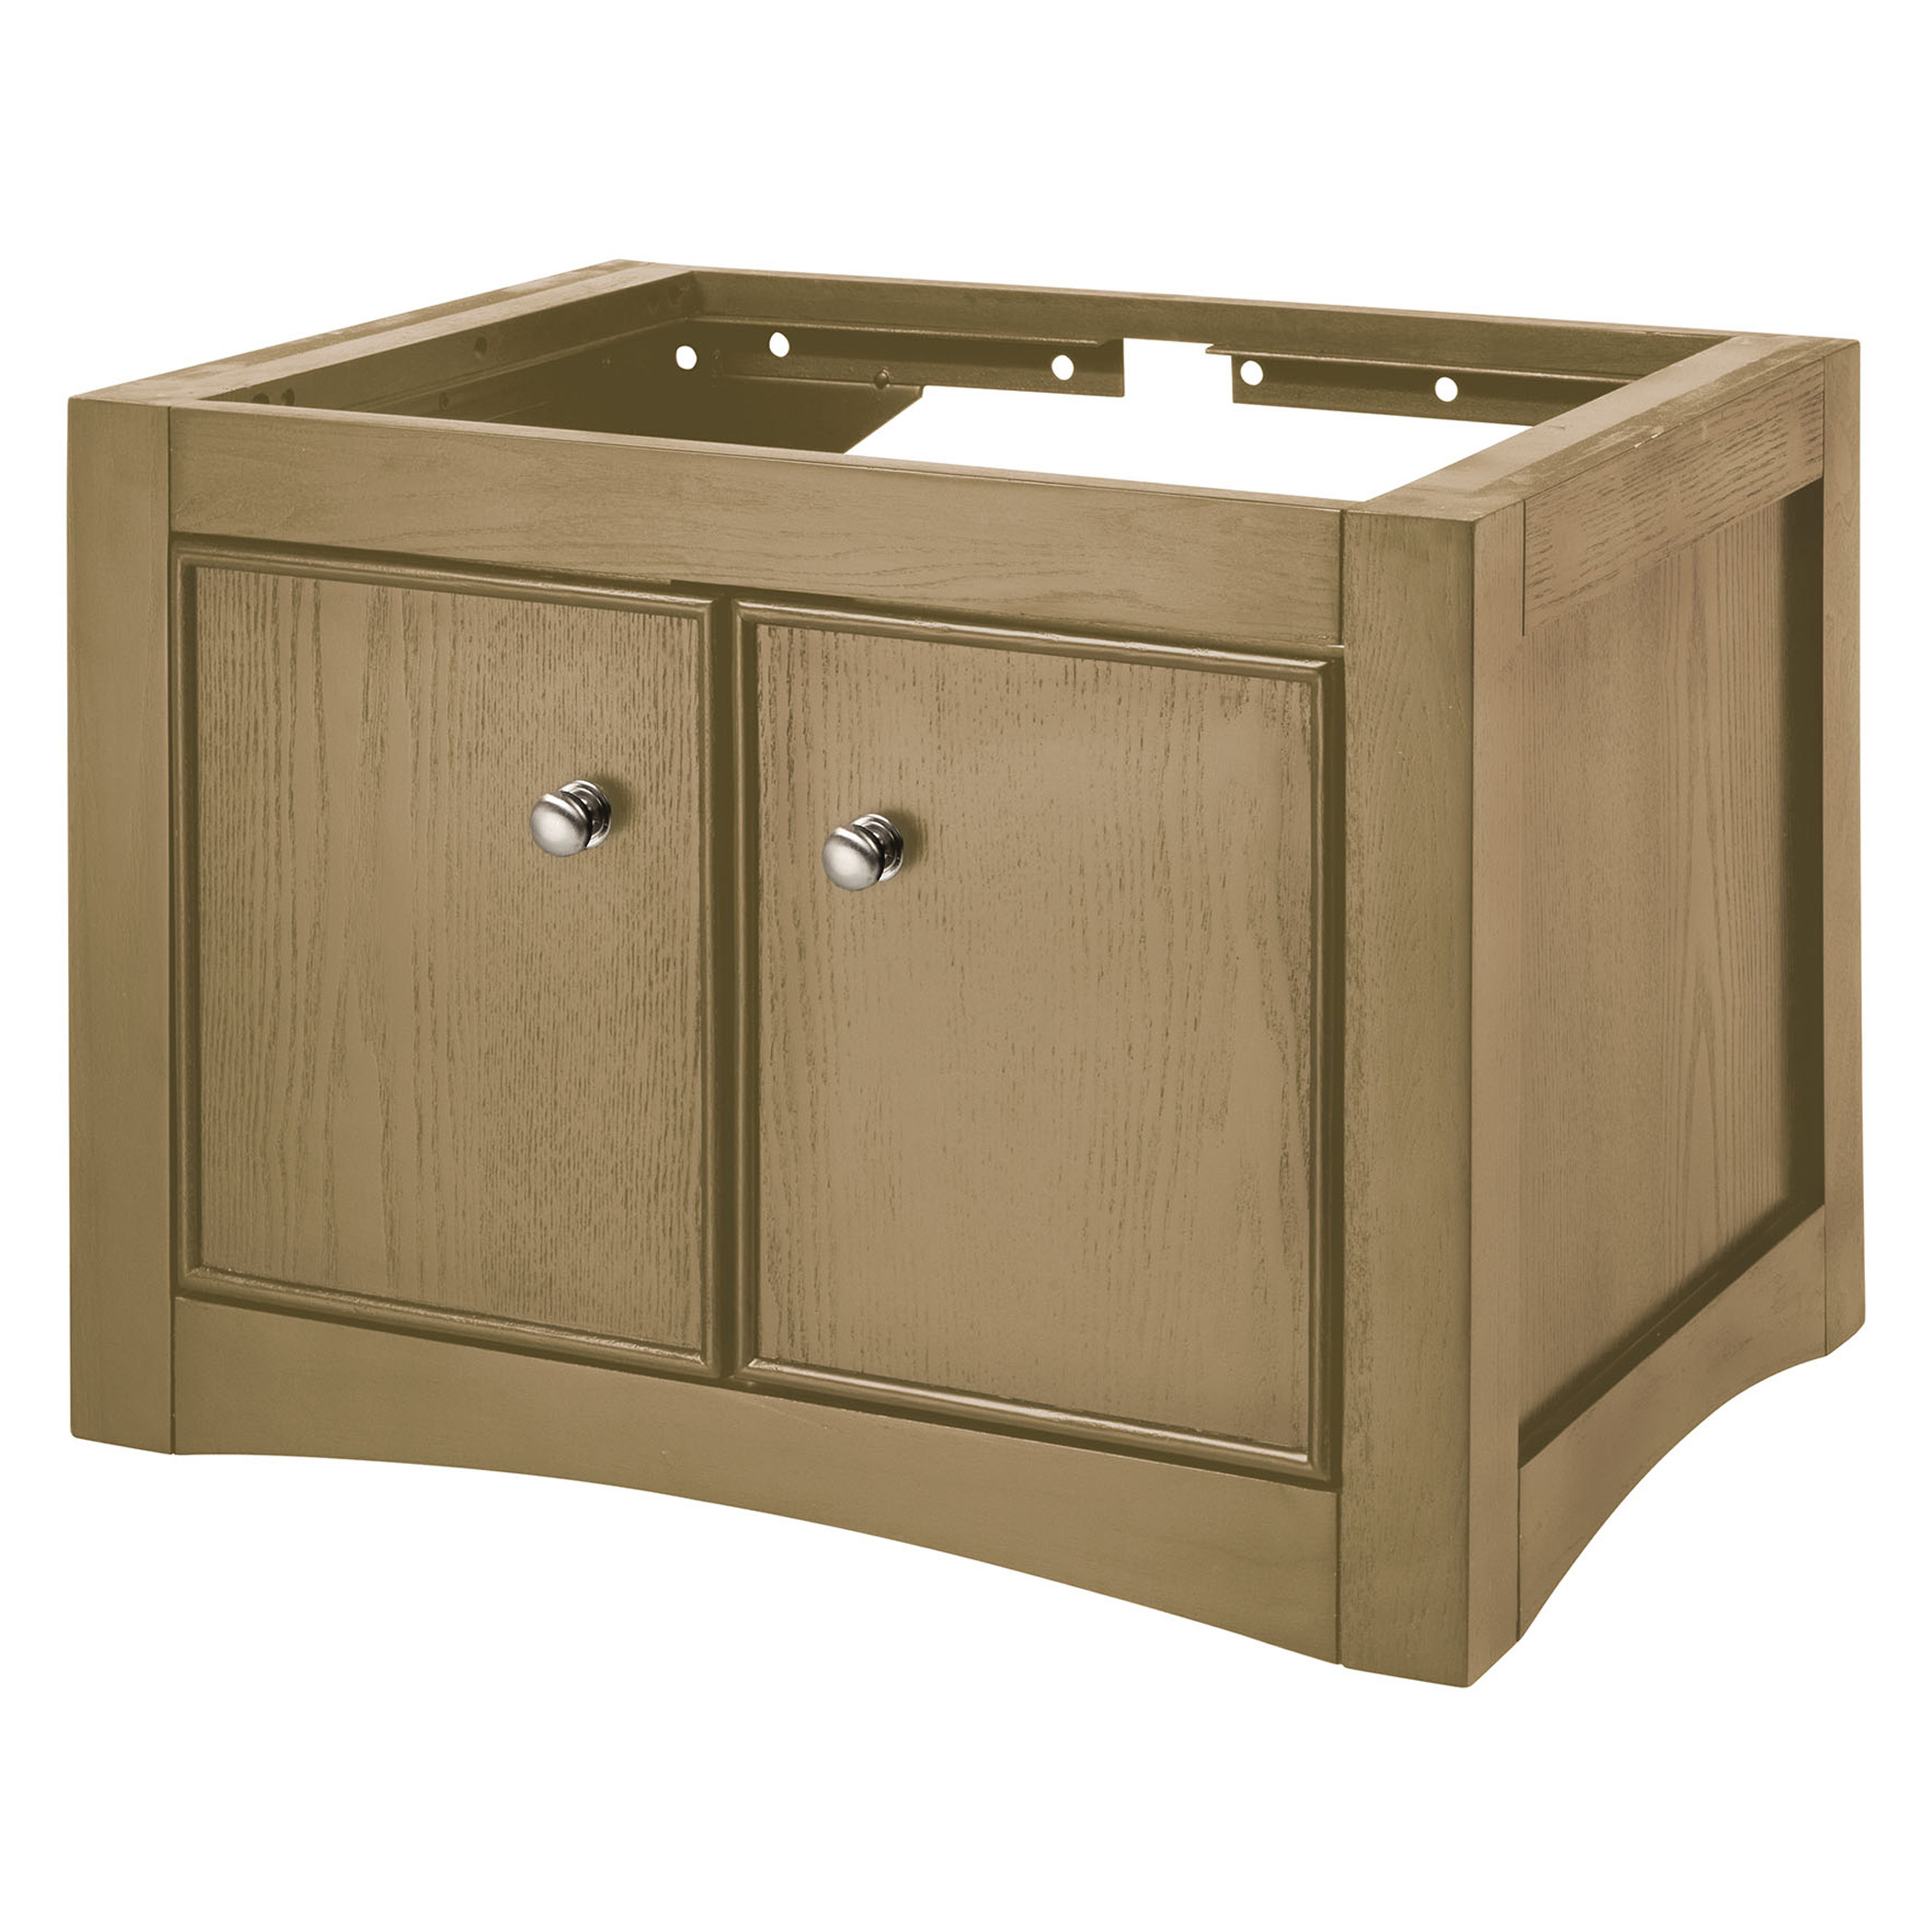 "24"" Wall Mounted Bathroom Vanity - Natural Ash Finish"